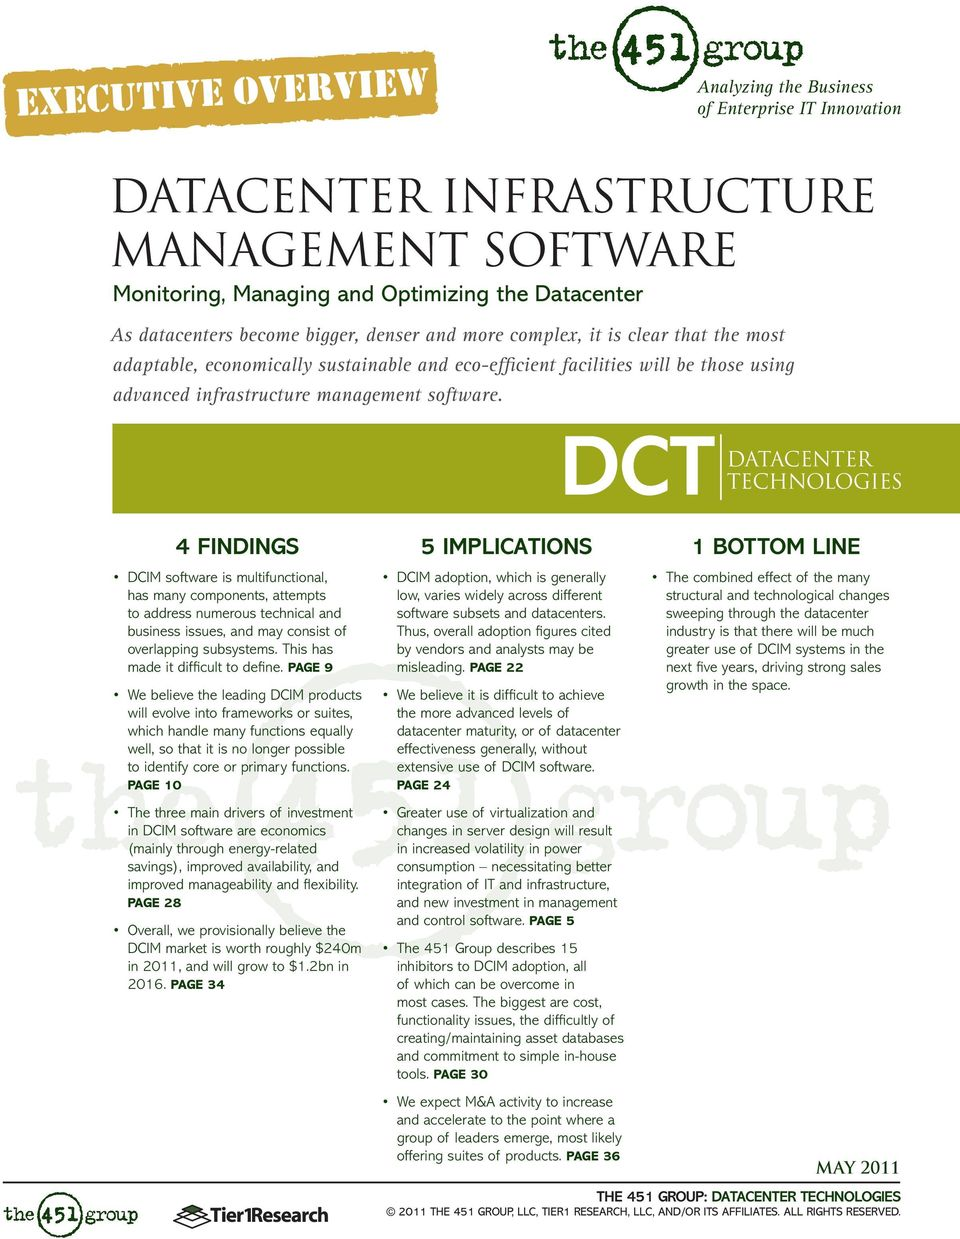 DCT DATACENTER TECHNOLOGIES 4 FINDINGS DCIM software is multifunctional, has many components, attempts to address numerous technical and business issues, and may consist of overlapping subsystems.